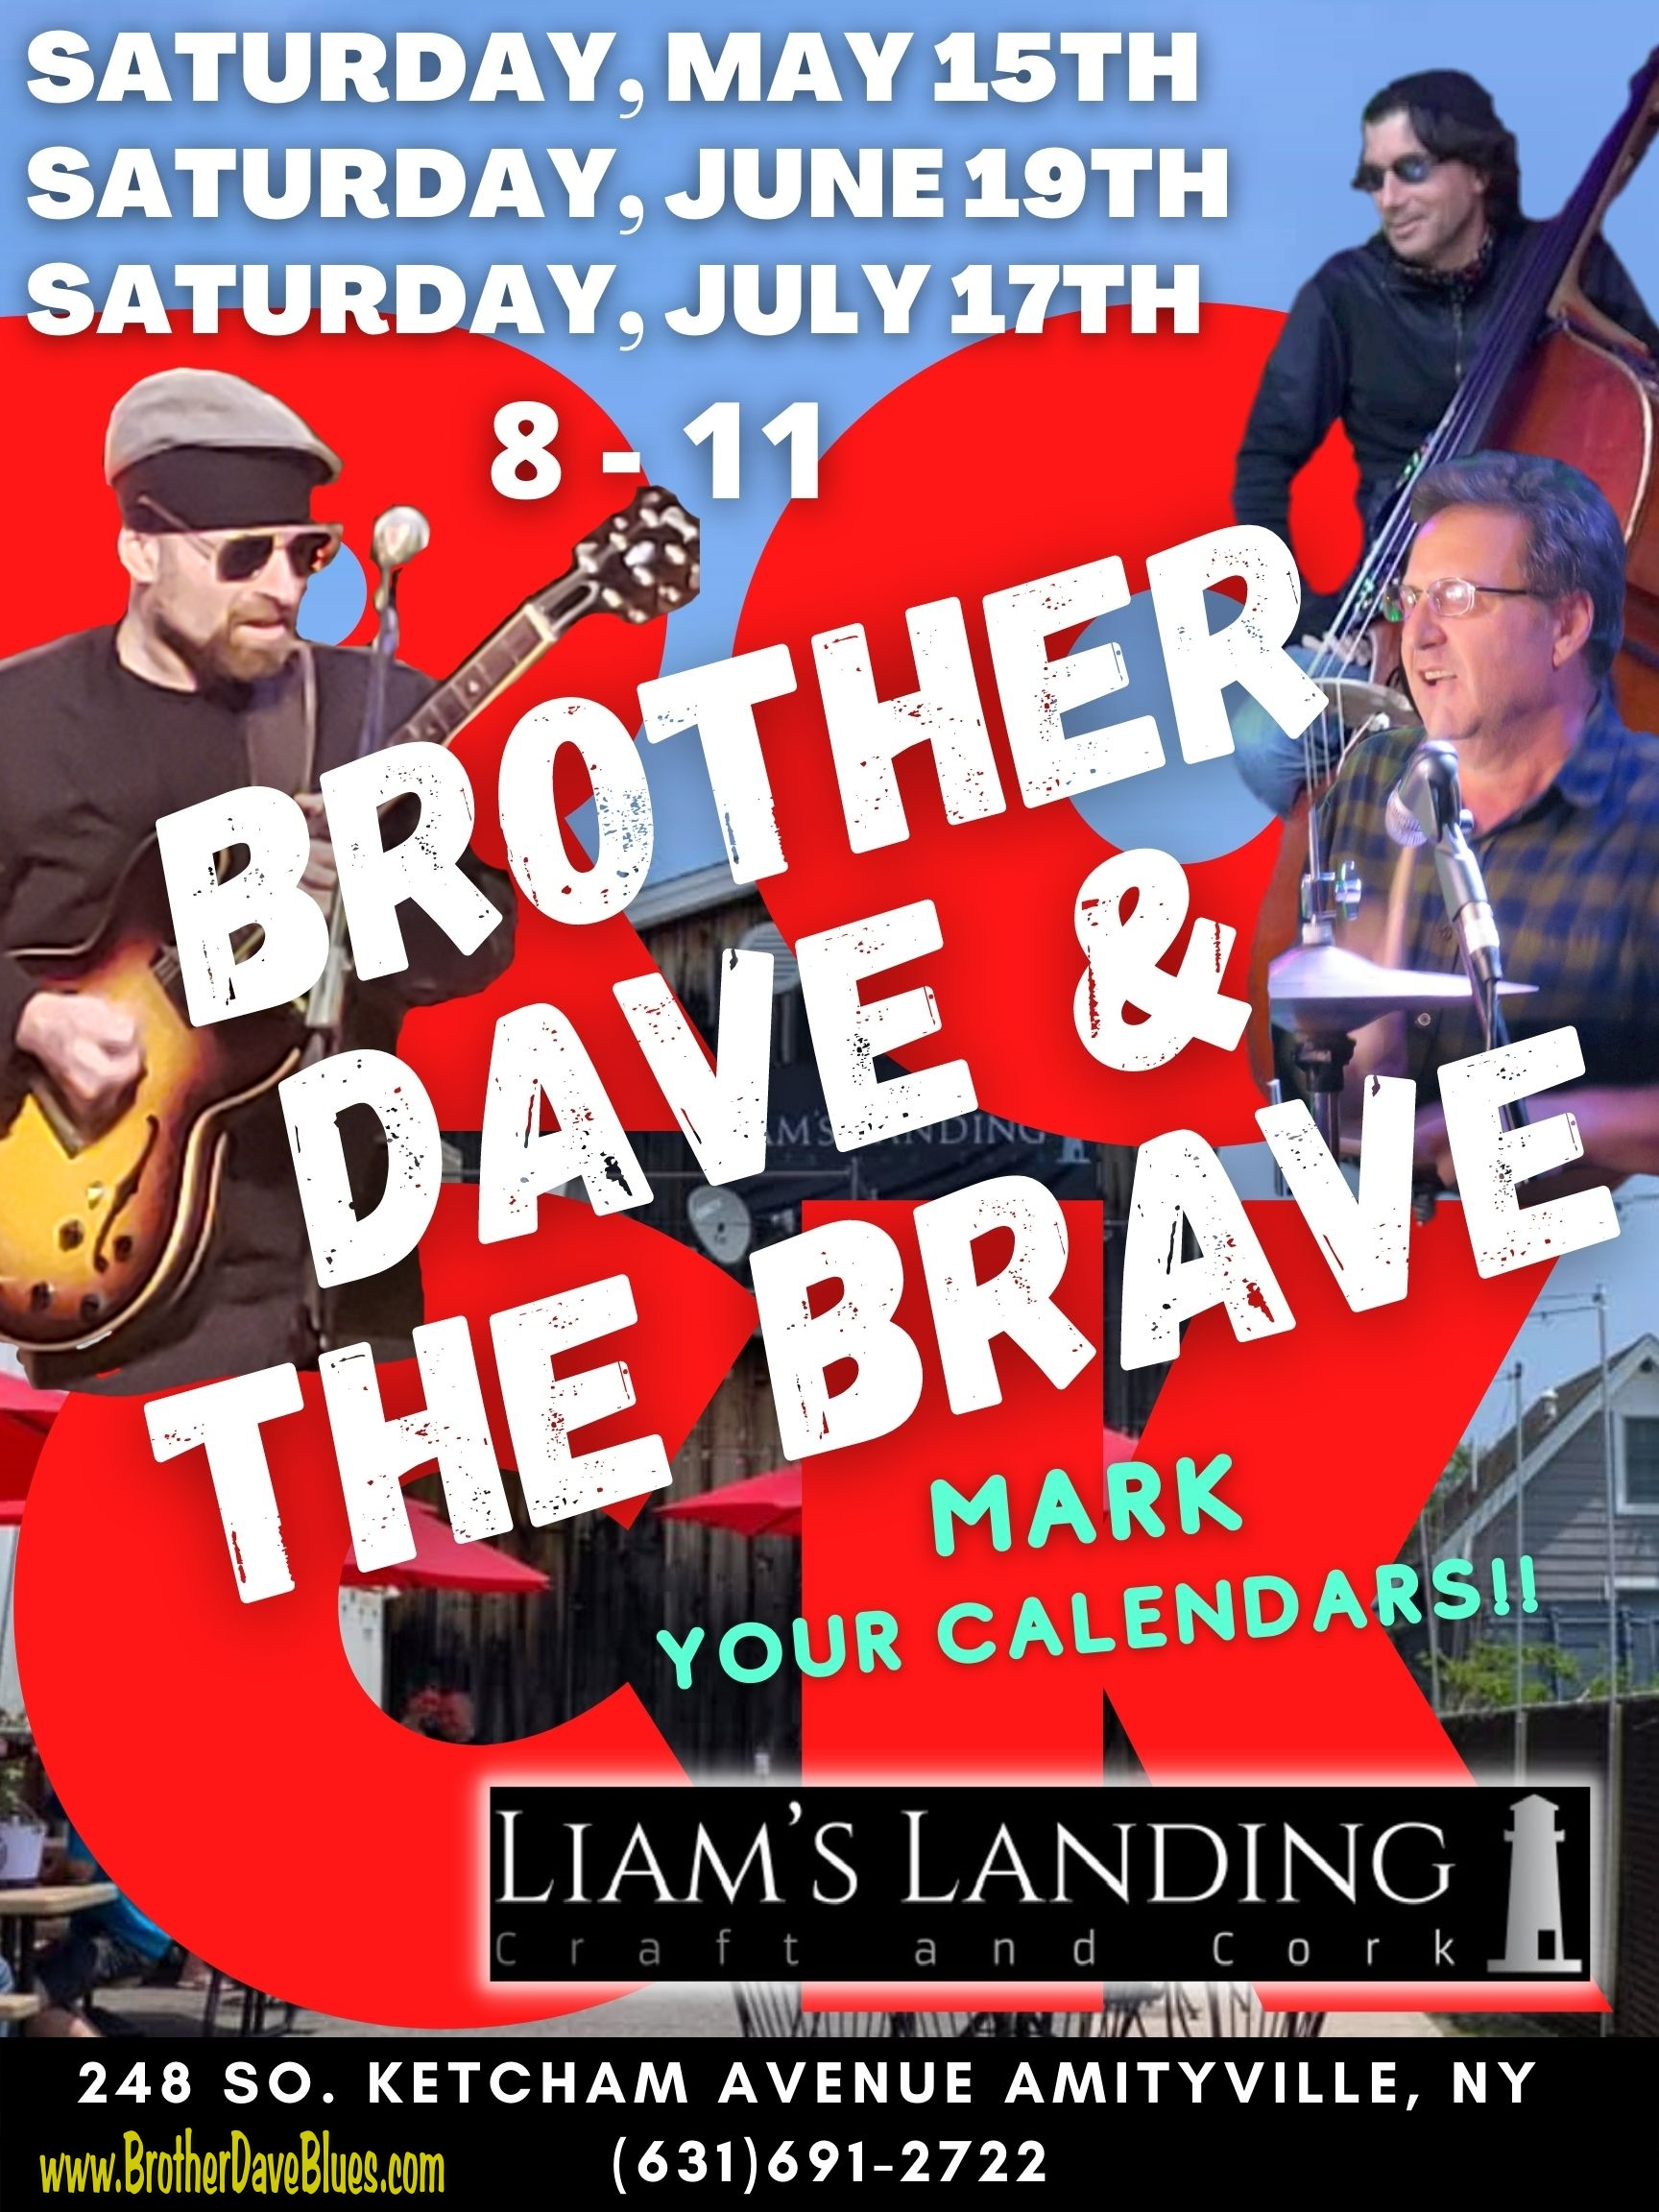 Liams_Landing_Events_Poster